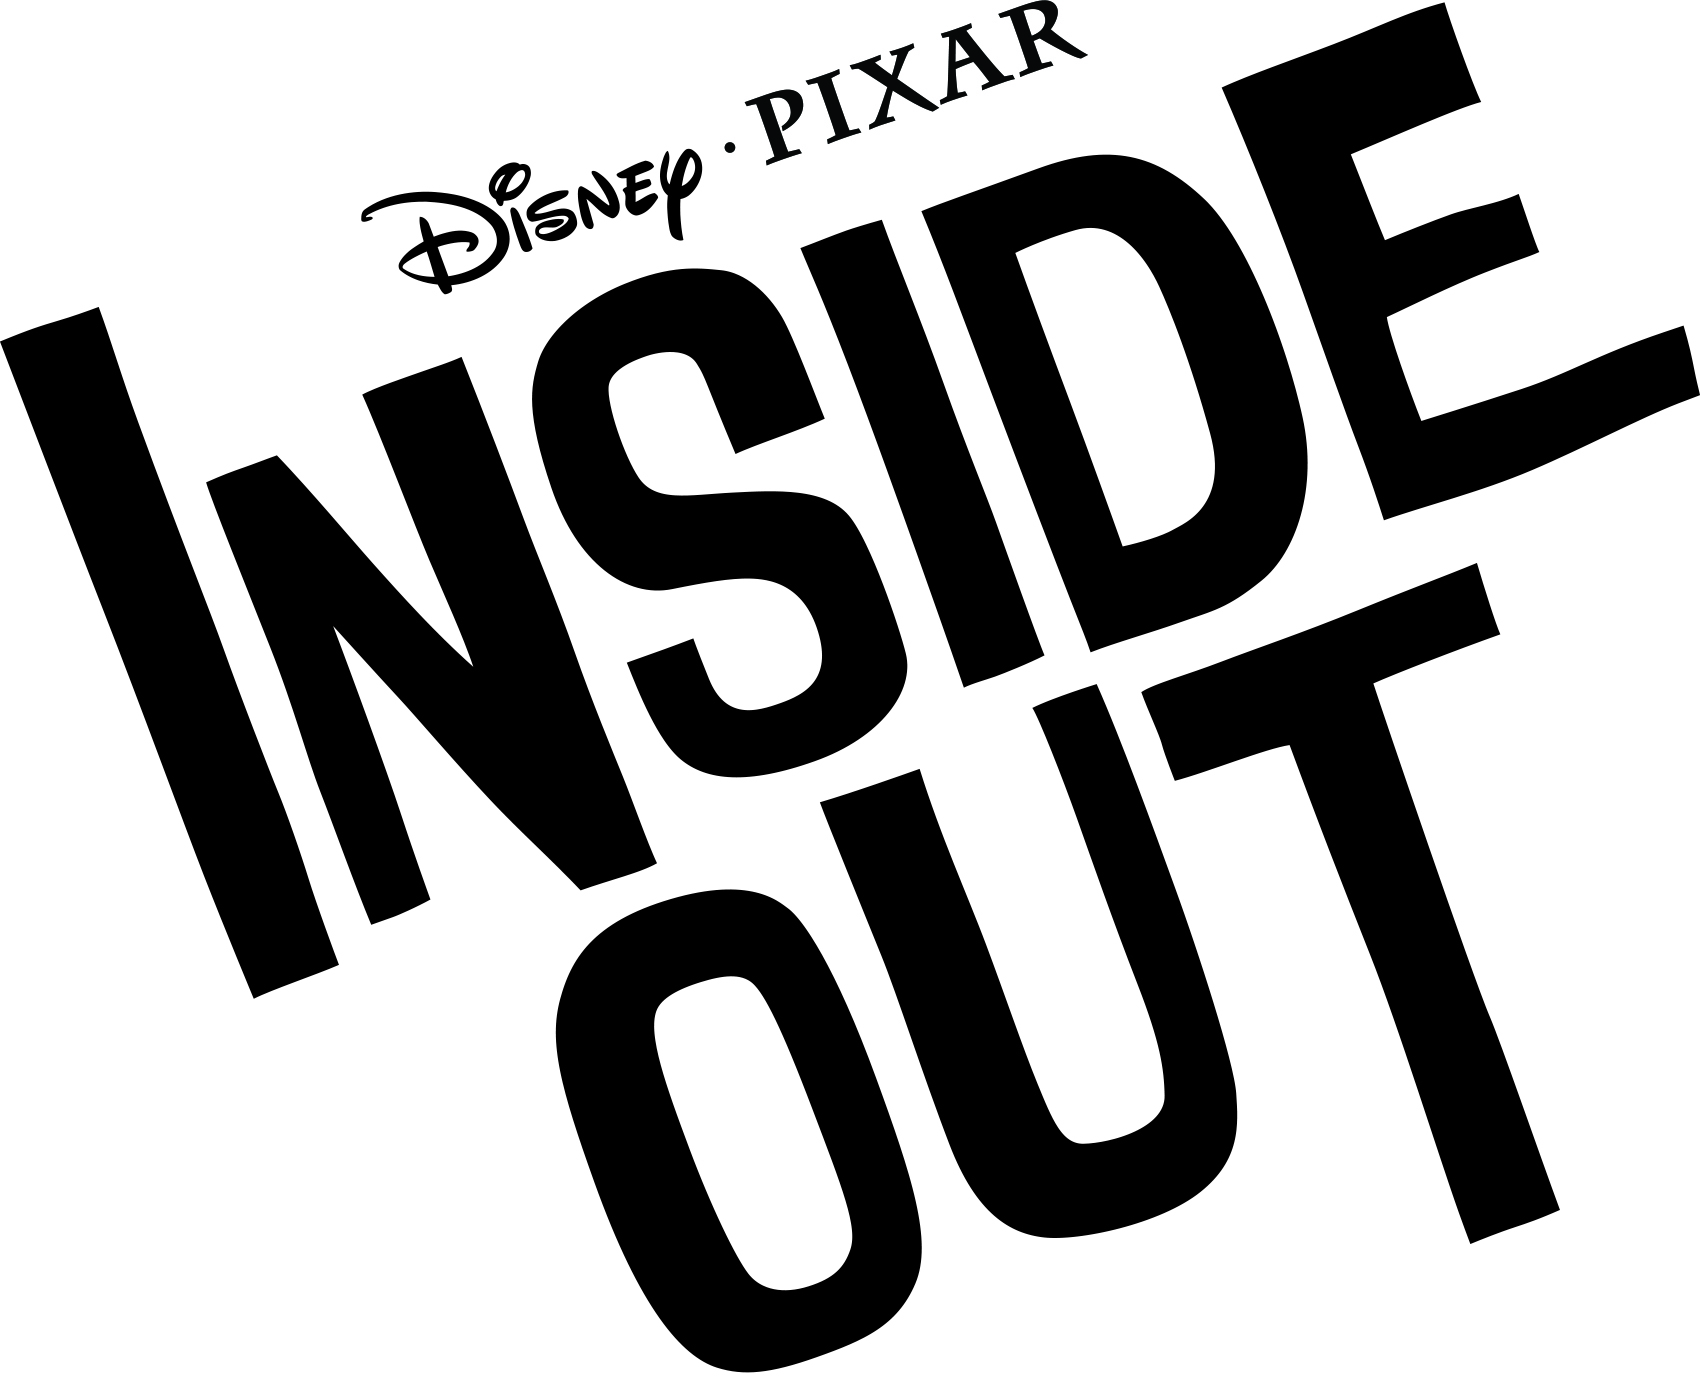 Disney inside out coloring page - Disney Pixar Inside Out Activity Sheets